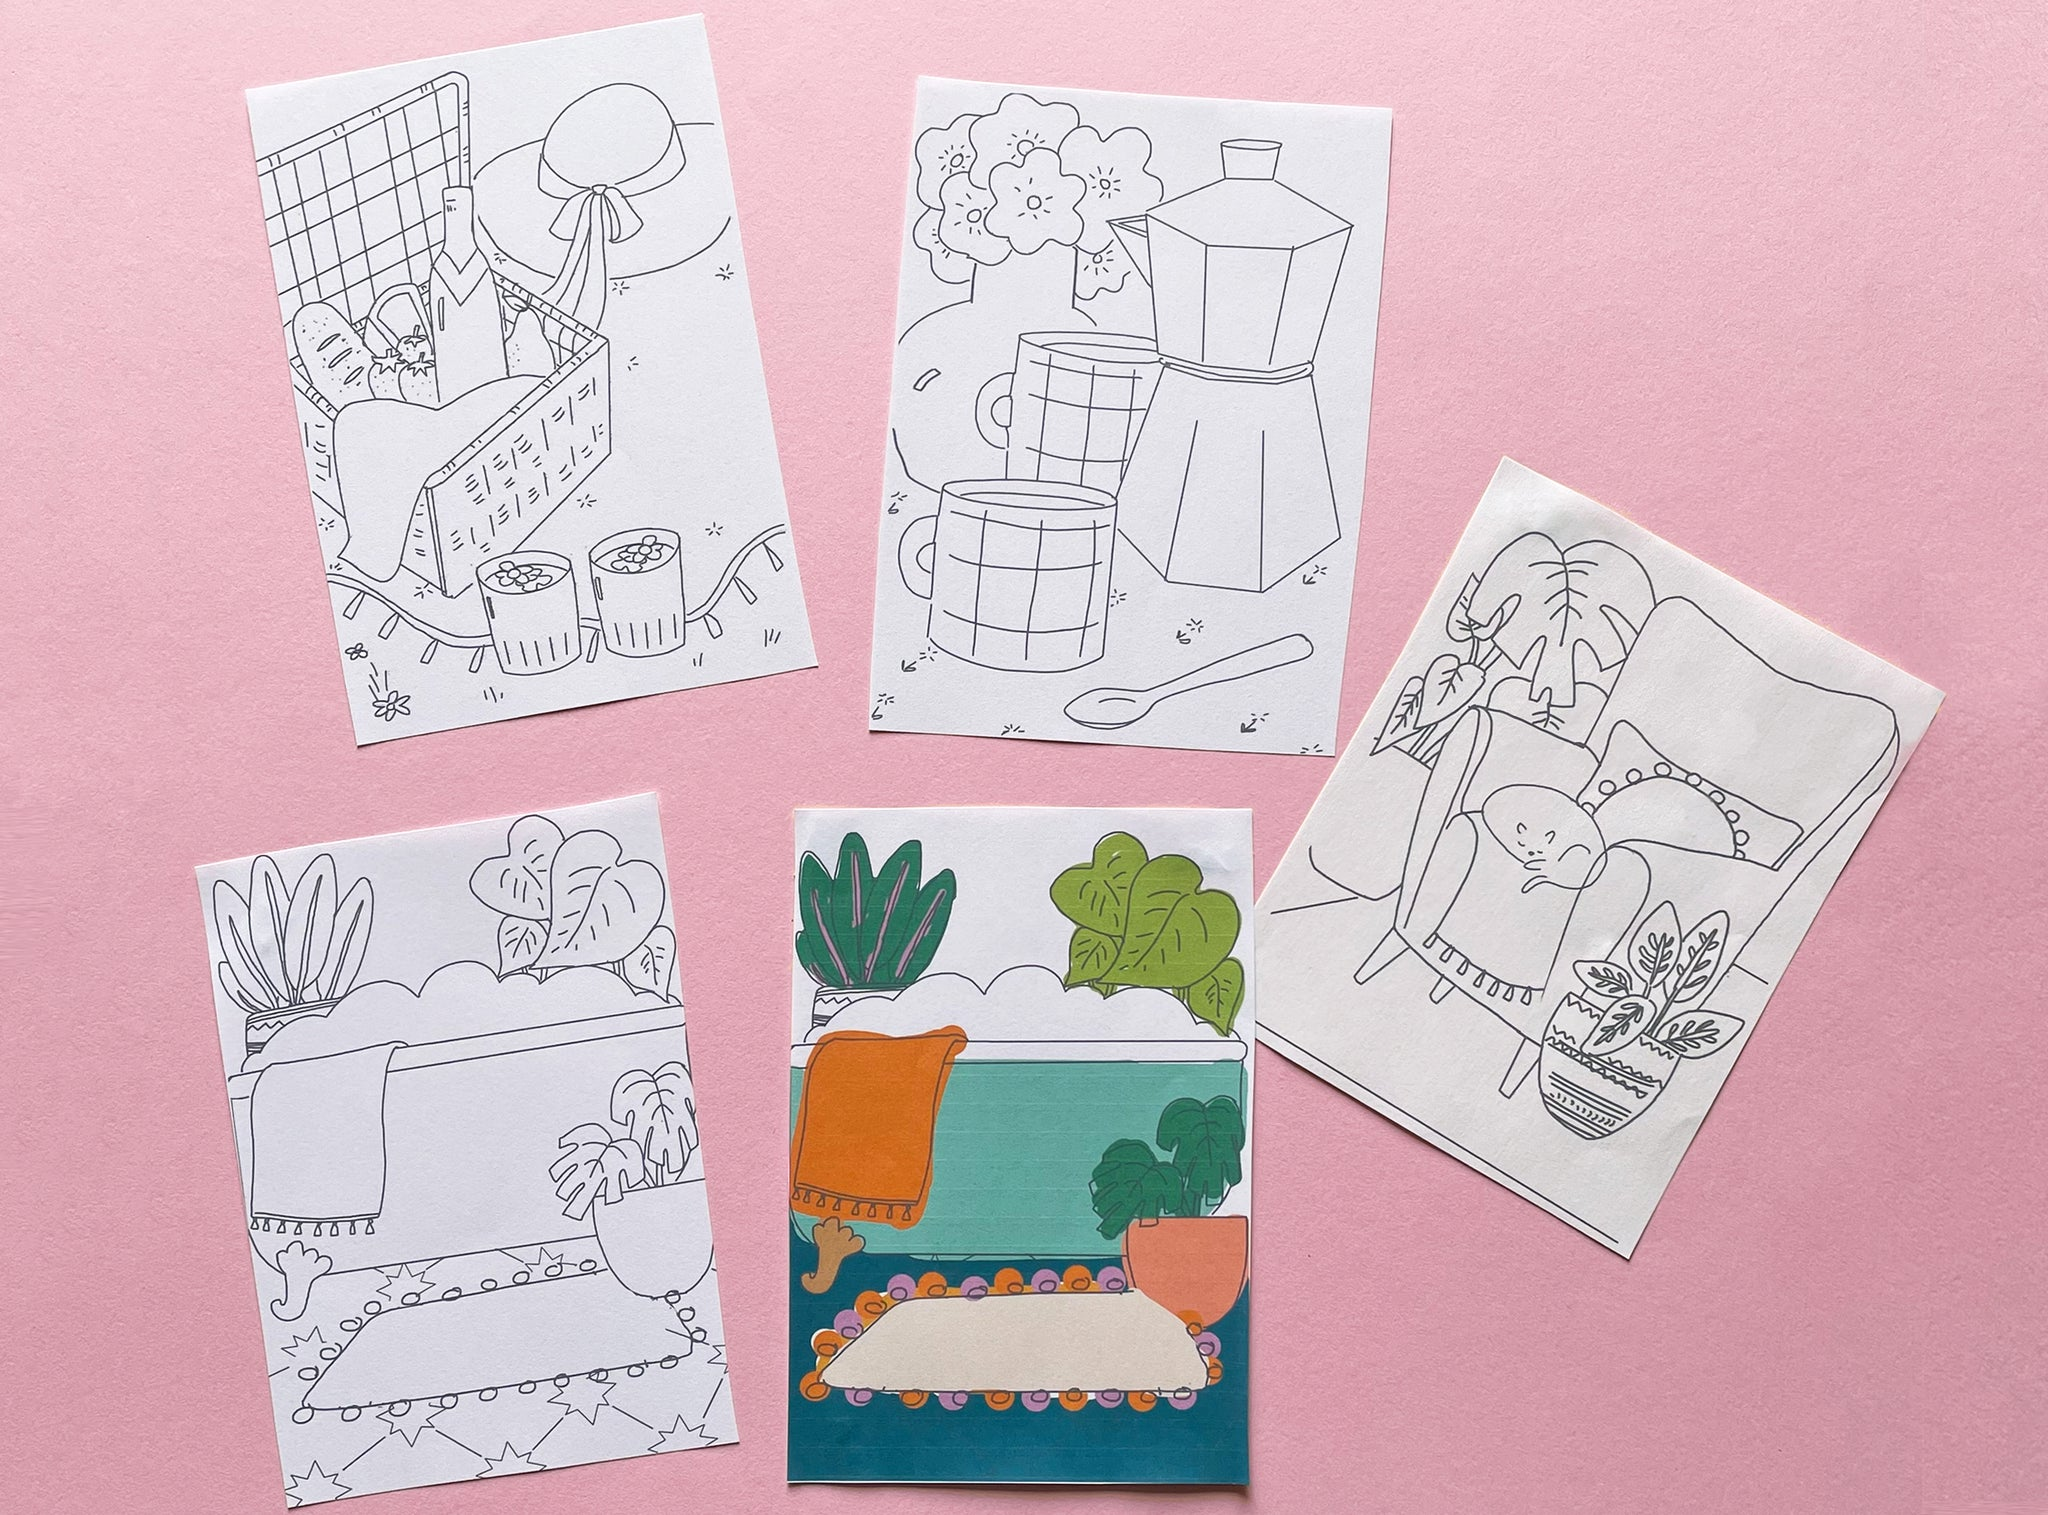 Illustrated sketch ideas for Golden Moments greeting card designs | Raspberry Blossom